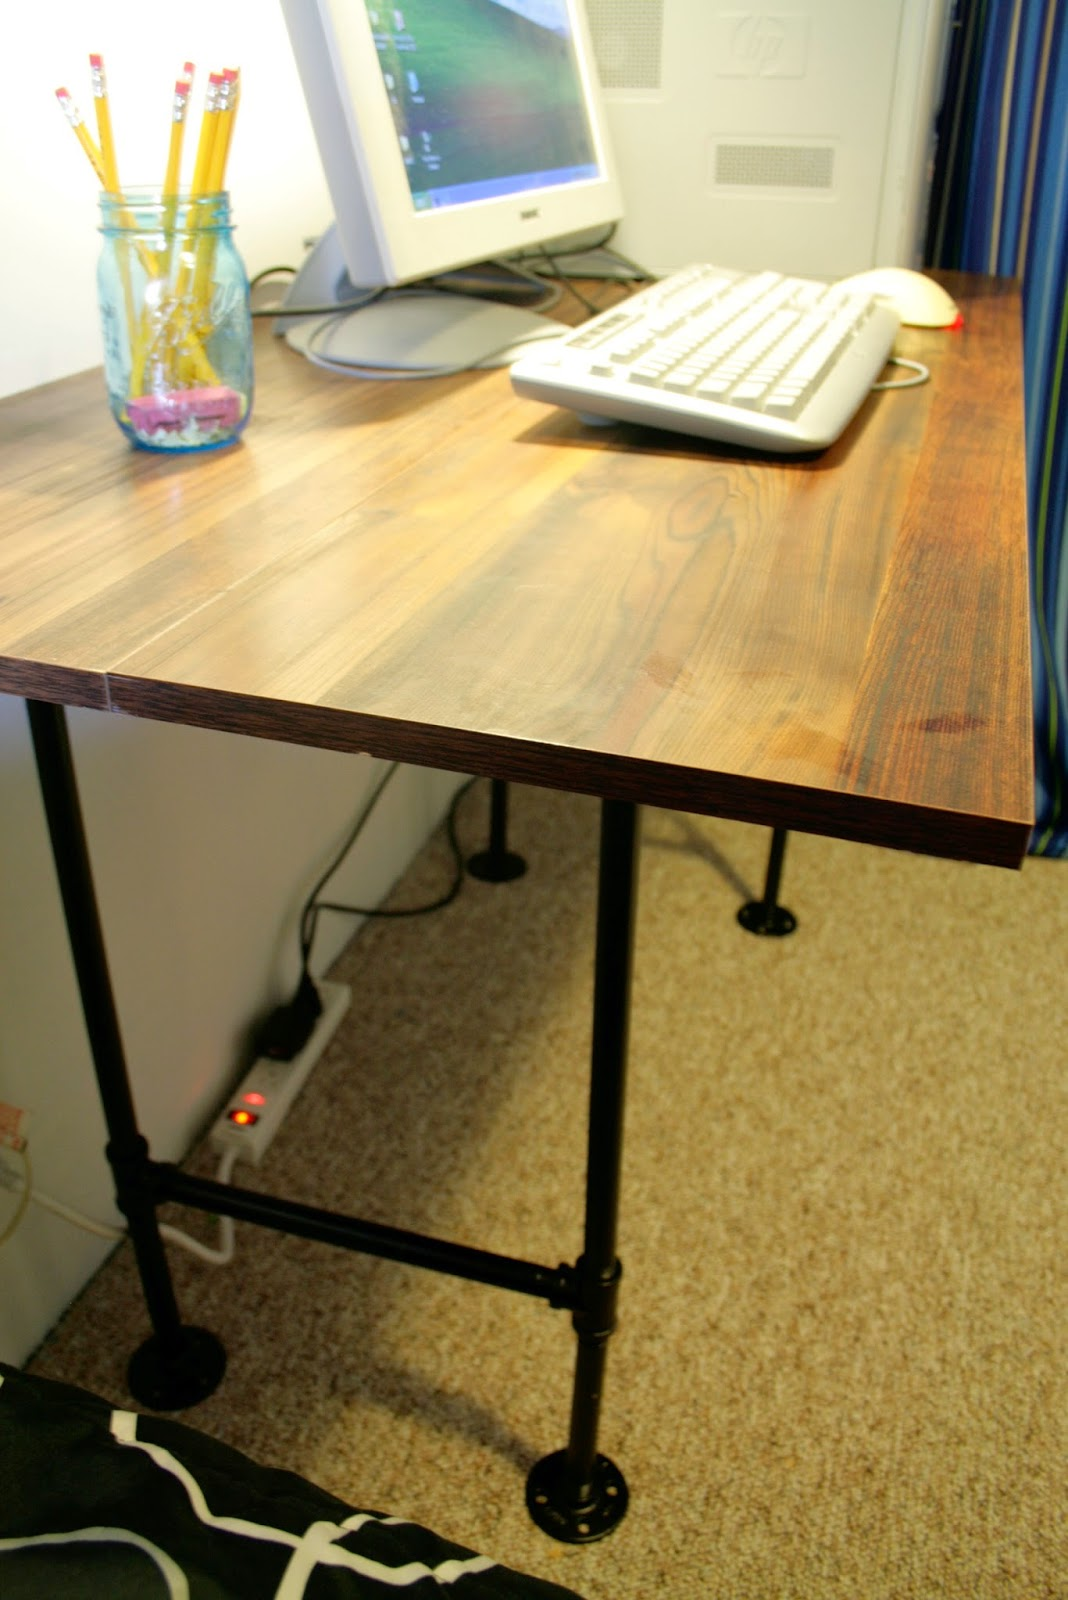 The dieter family industrial pipe desk diy for Diy industrial